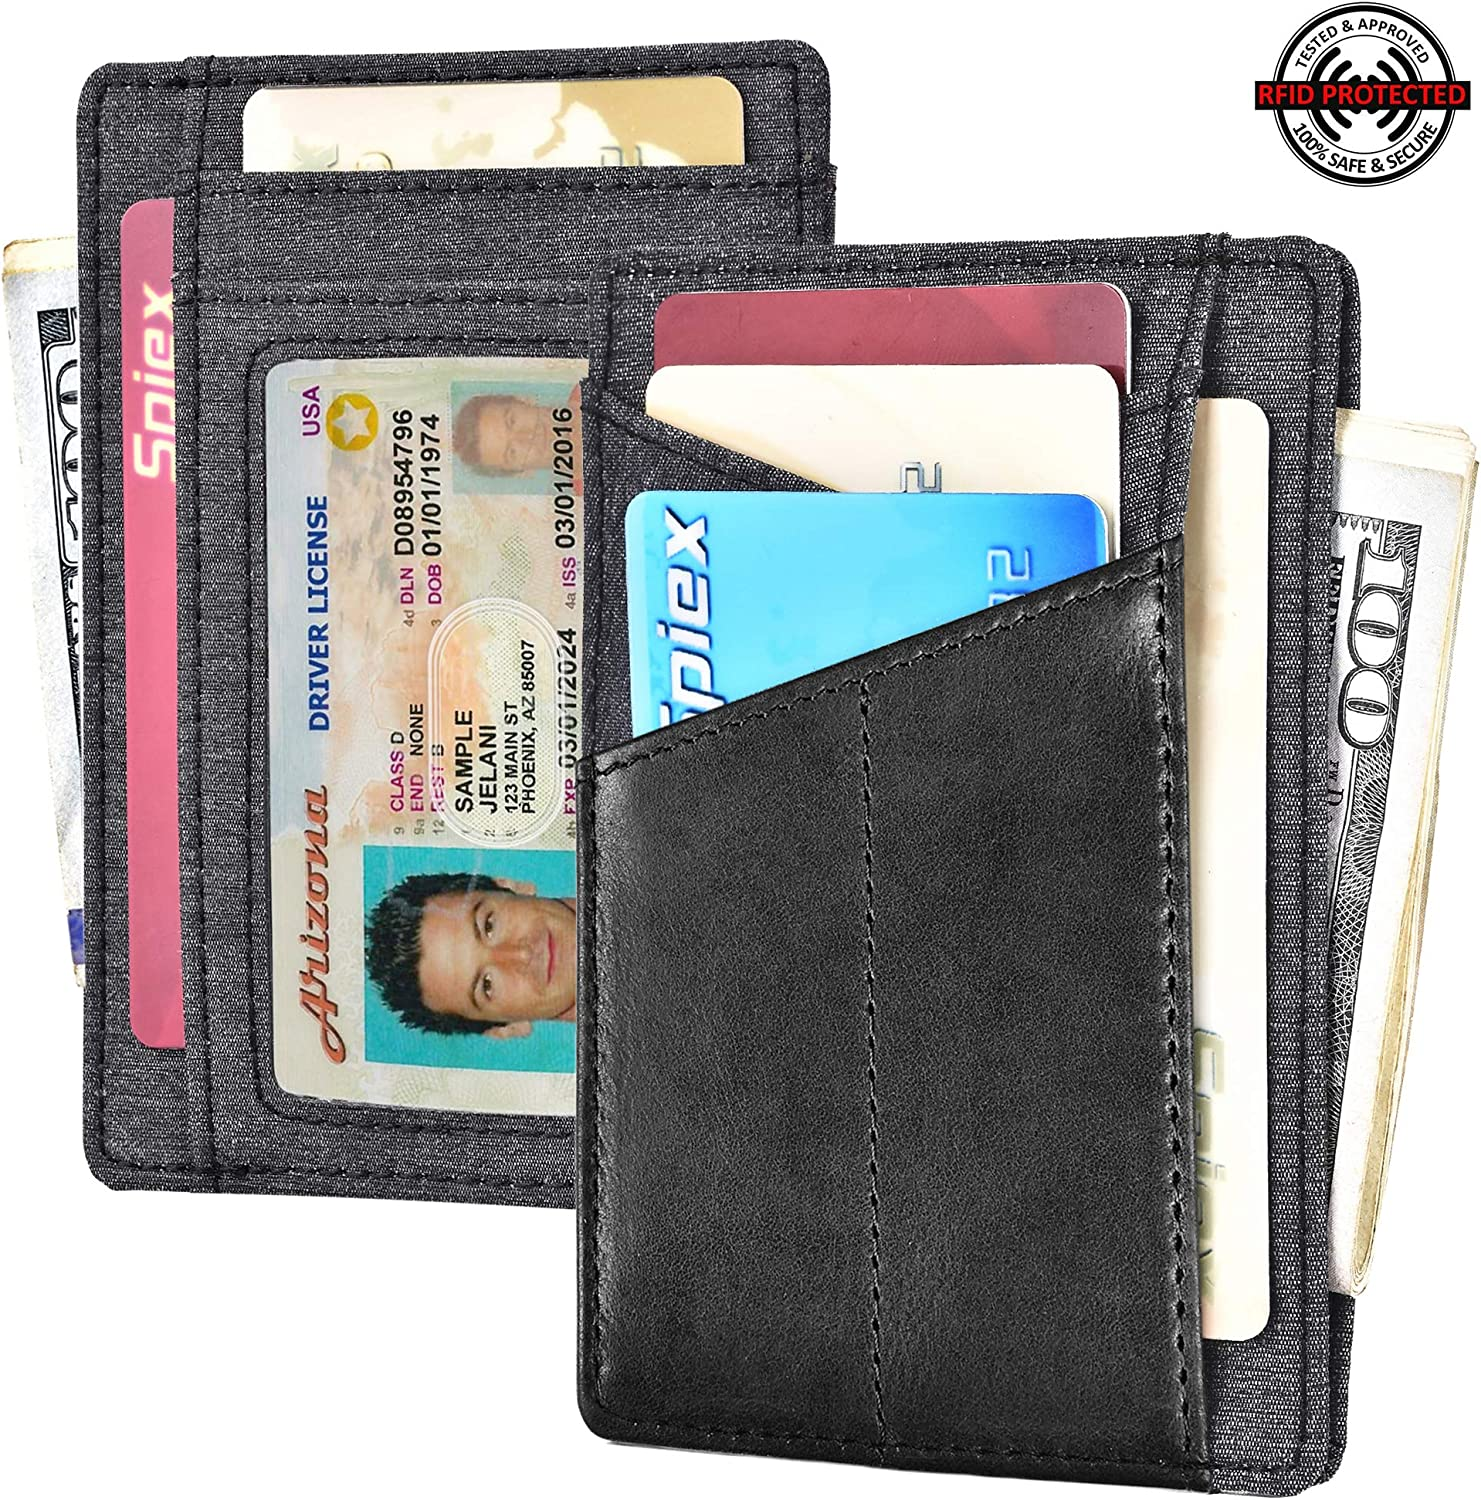 RFID Blocking Wallet Minimalist Slim Leather Credit Card Holder for Men Holds up to 8 Cards and Bank Notes(Dimension: 110mm x 80mm) As250 - Grey & Black